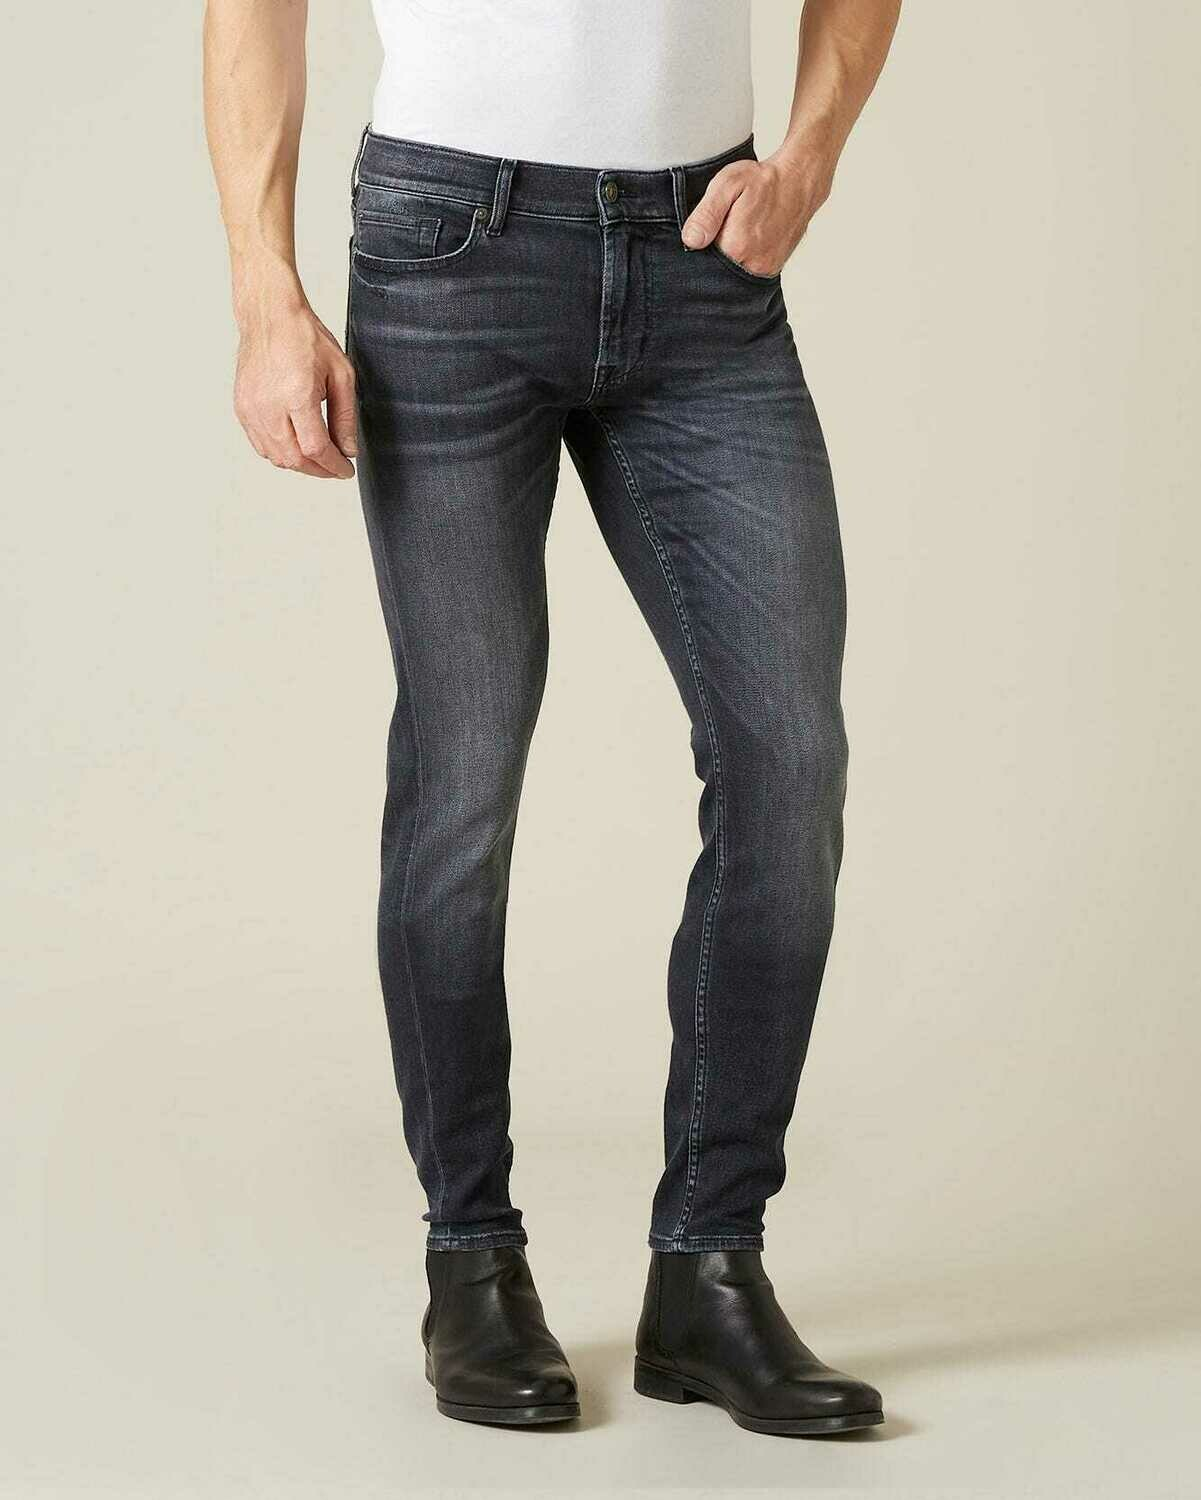 Seven | ronnie tapered stretch tek | ace grey